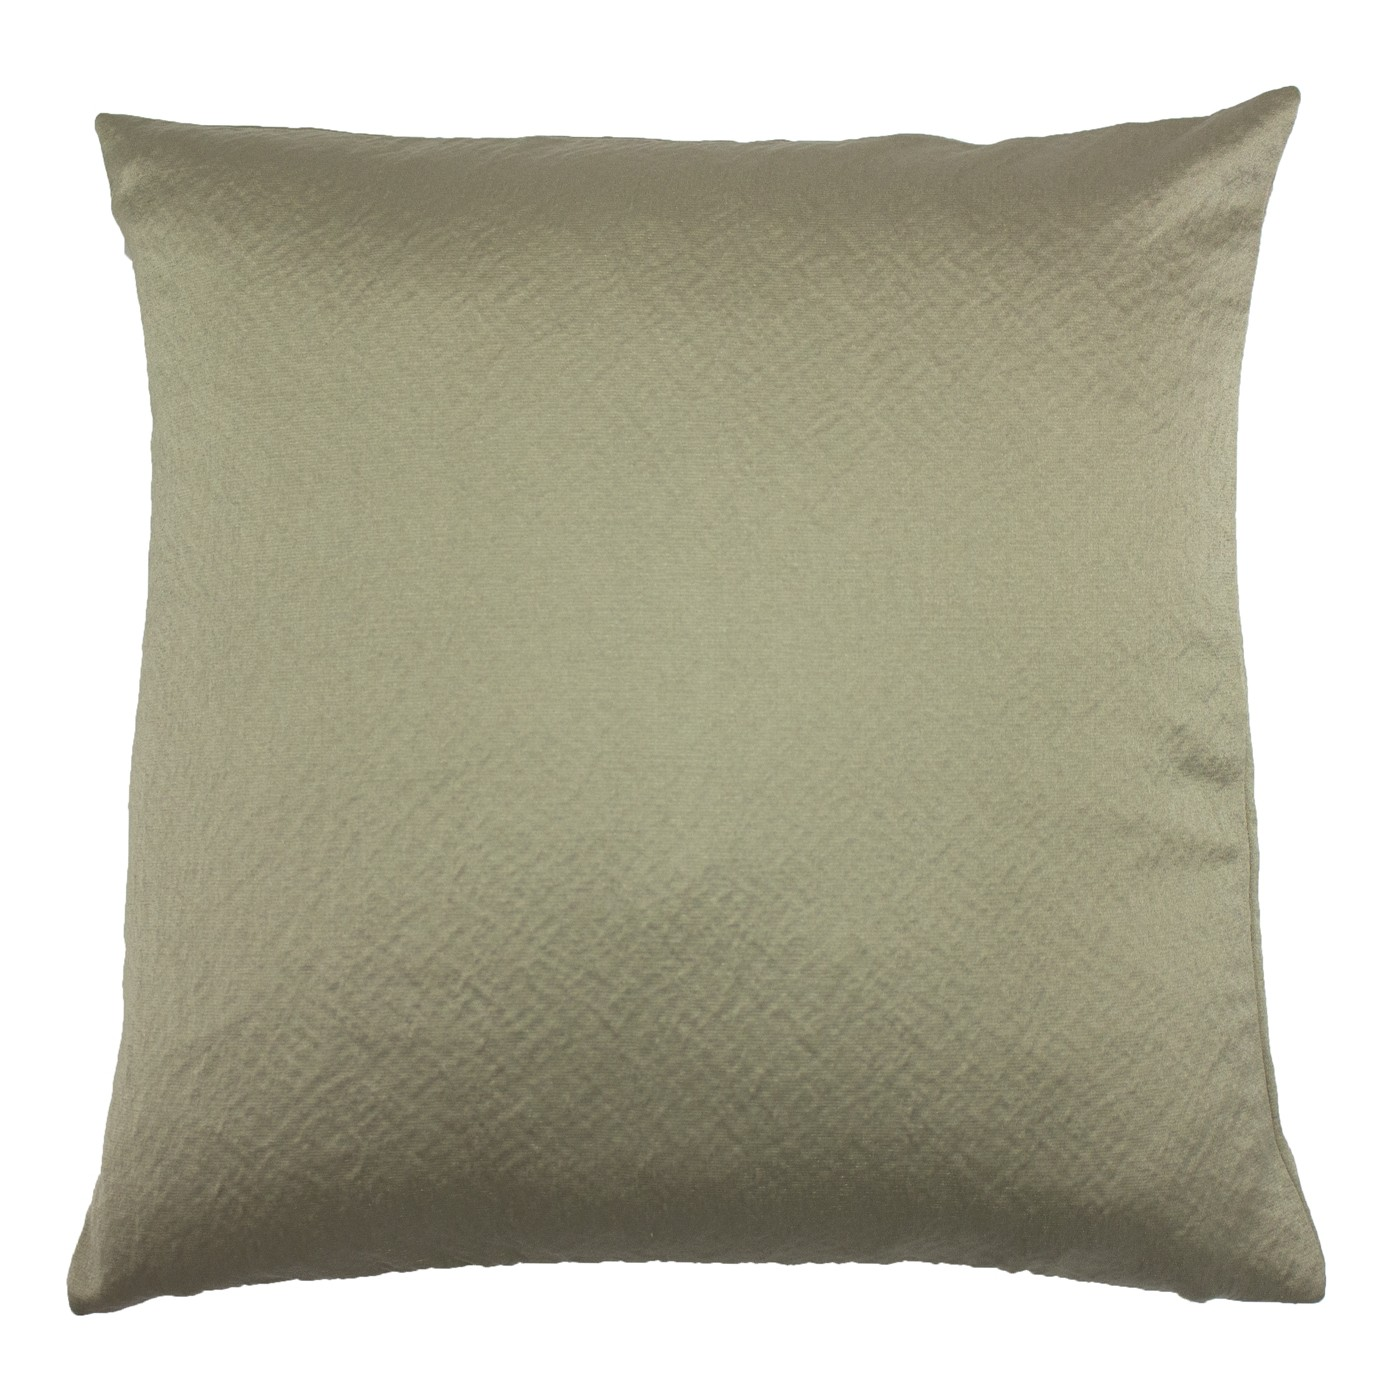 The Home Furnishings Company Palermo Oyster Cushion Cushion 45x45cms